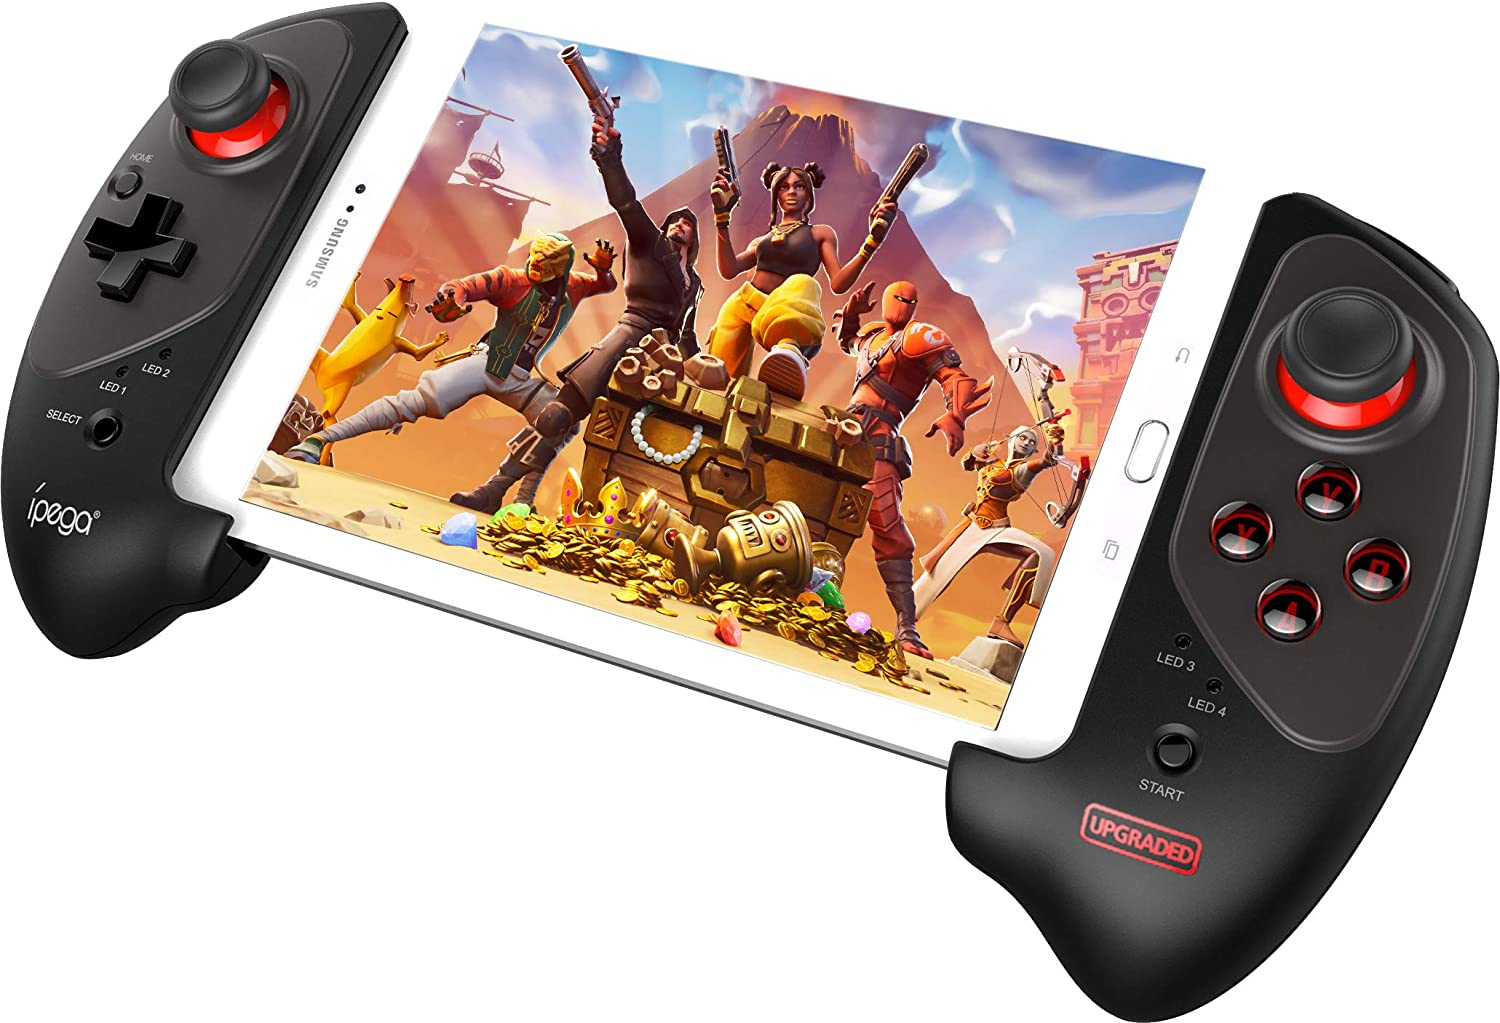 Megadream Wireless Mobile Games Controller Joystick Key Mapping Gamepad for Samsung Galaxy S10 S10+/S20/S20+5G NOTE10 LG HTC Huawei P30 P40 Smart Android Mobile Phone Tablet PC (Android 6.0+)